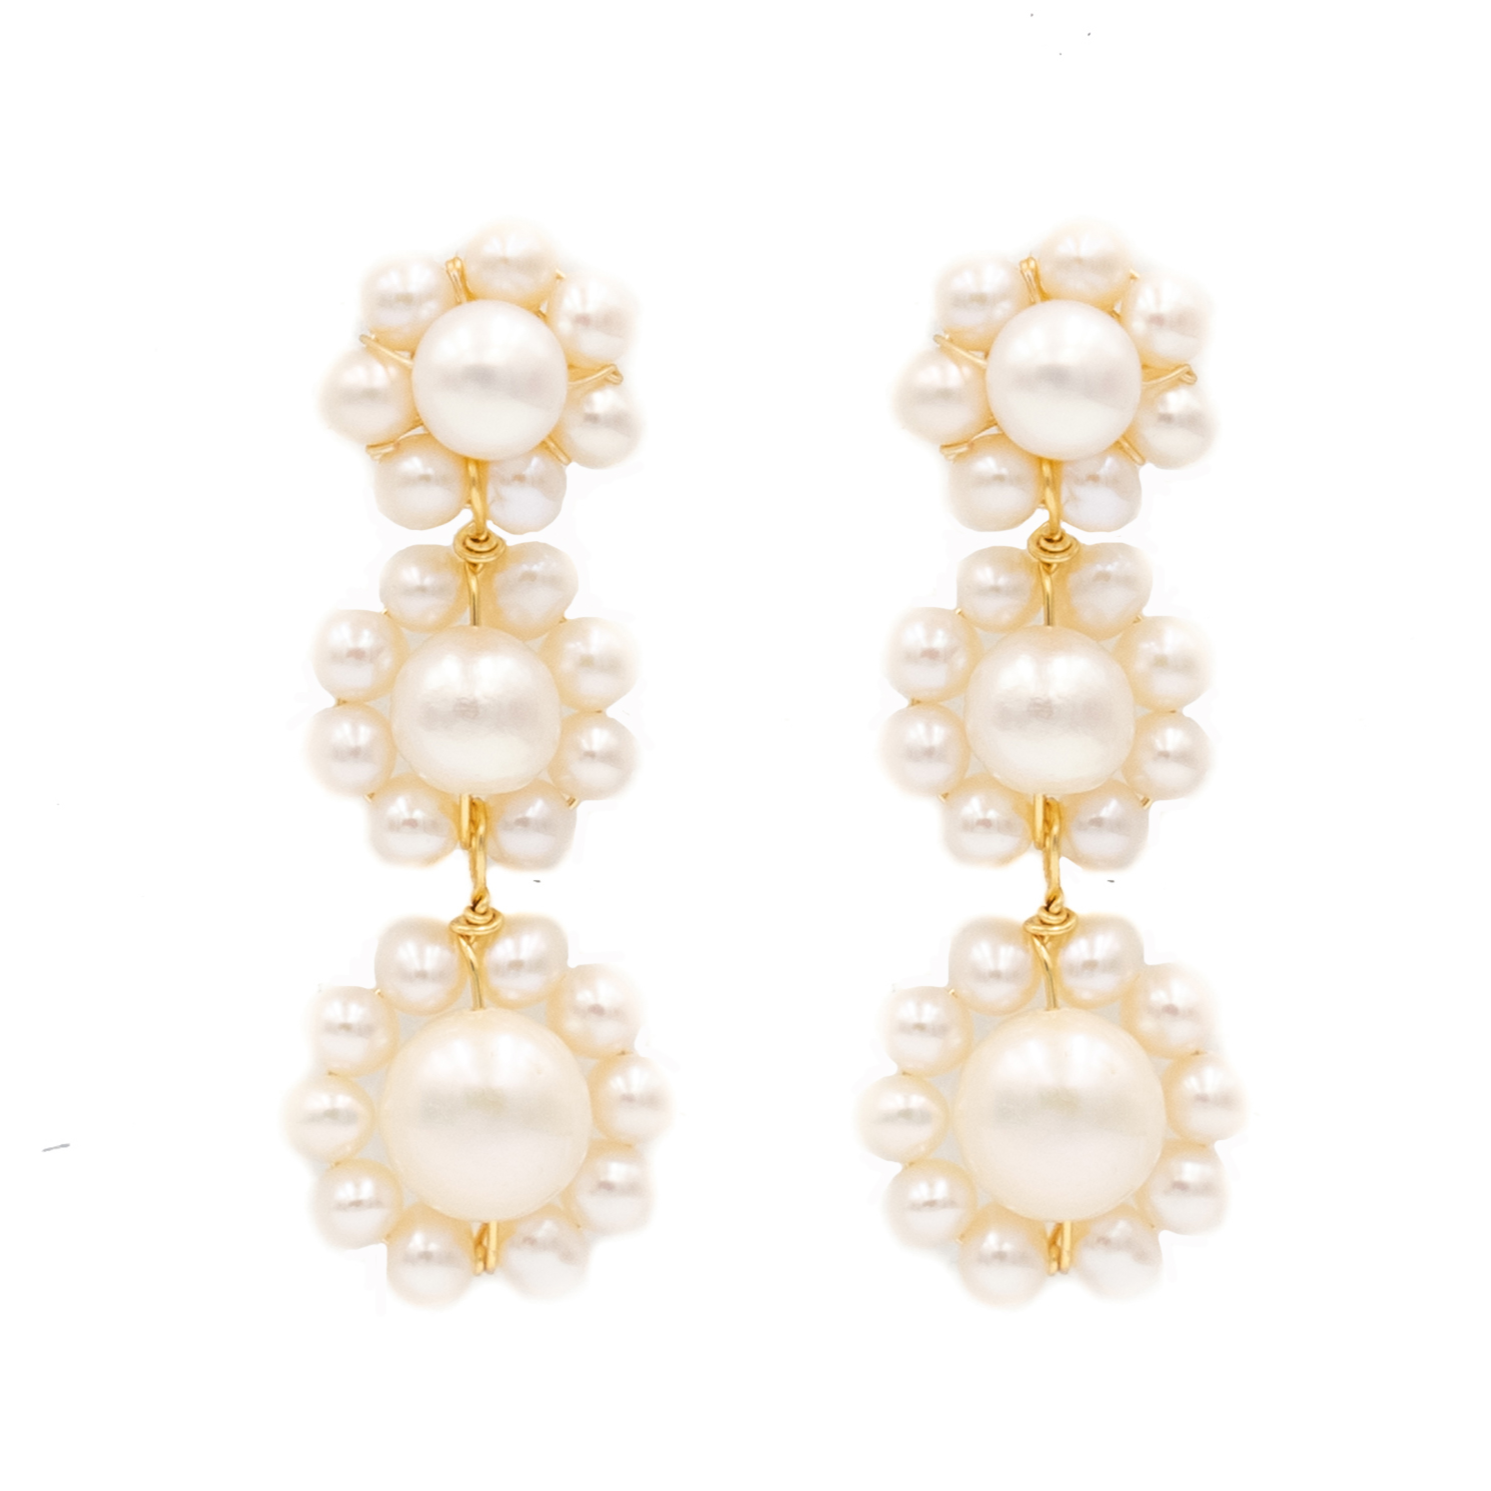 Marie Earring, Triple